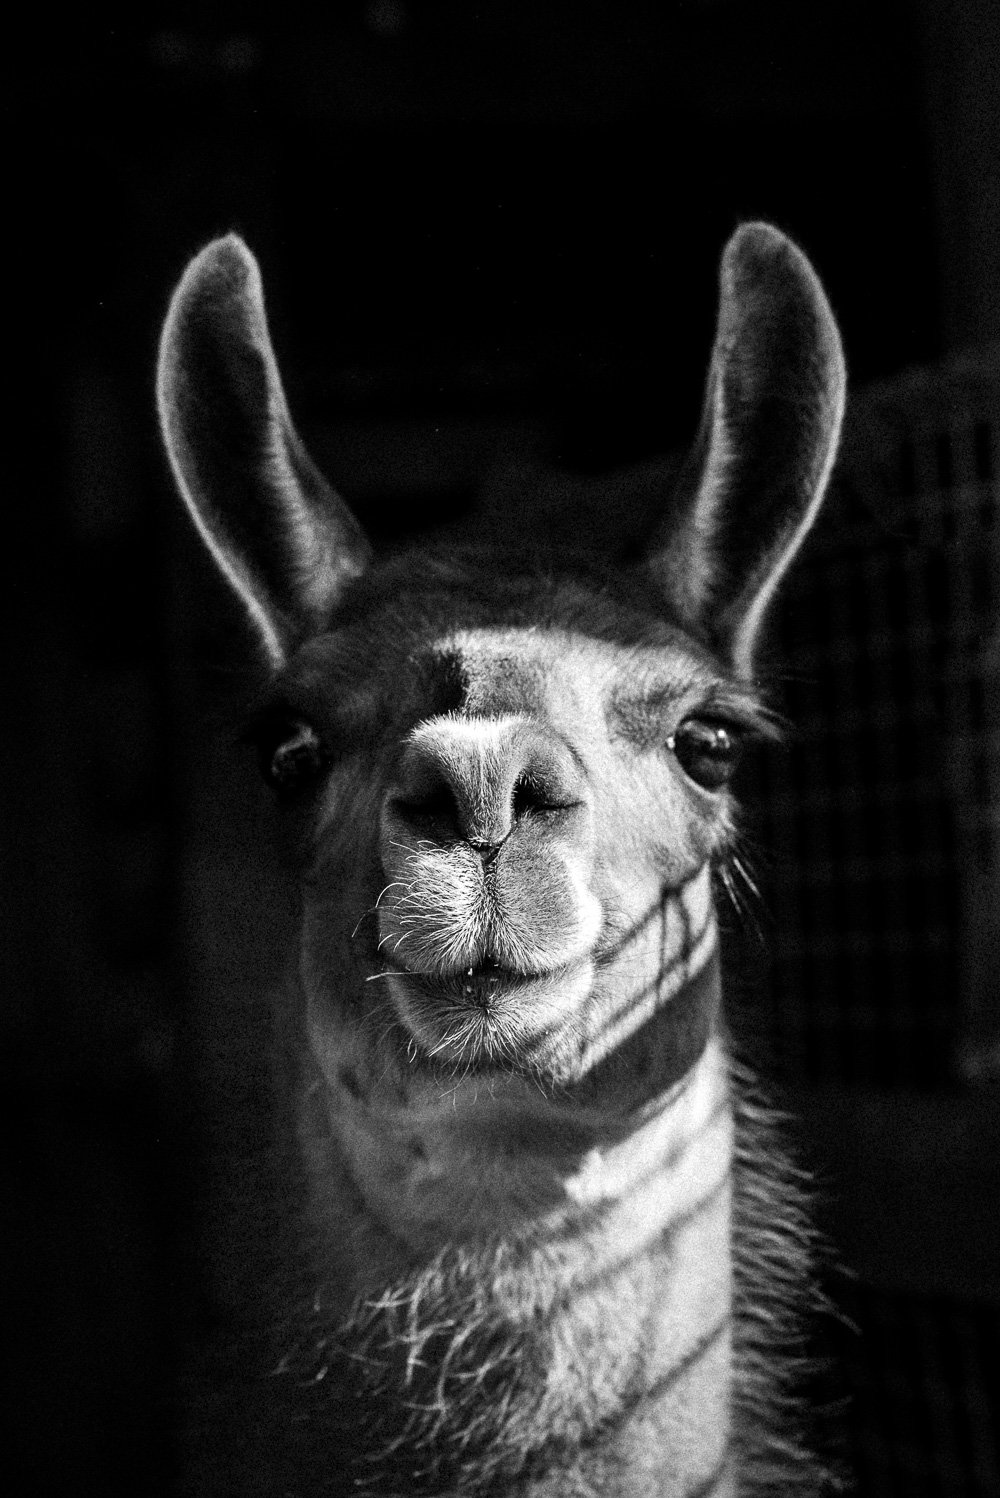 Llama Photographic Print in B&W - Australian Travel Photographer Deb Boots